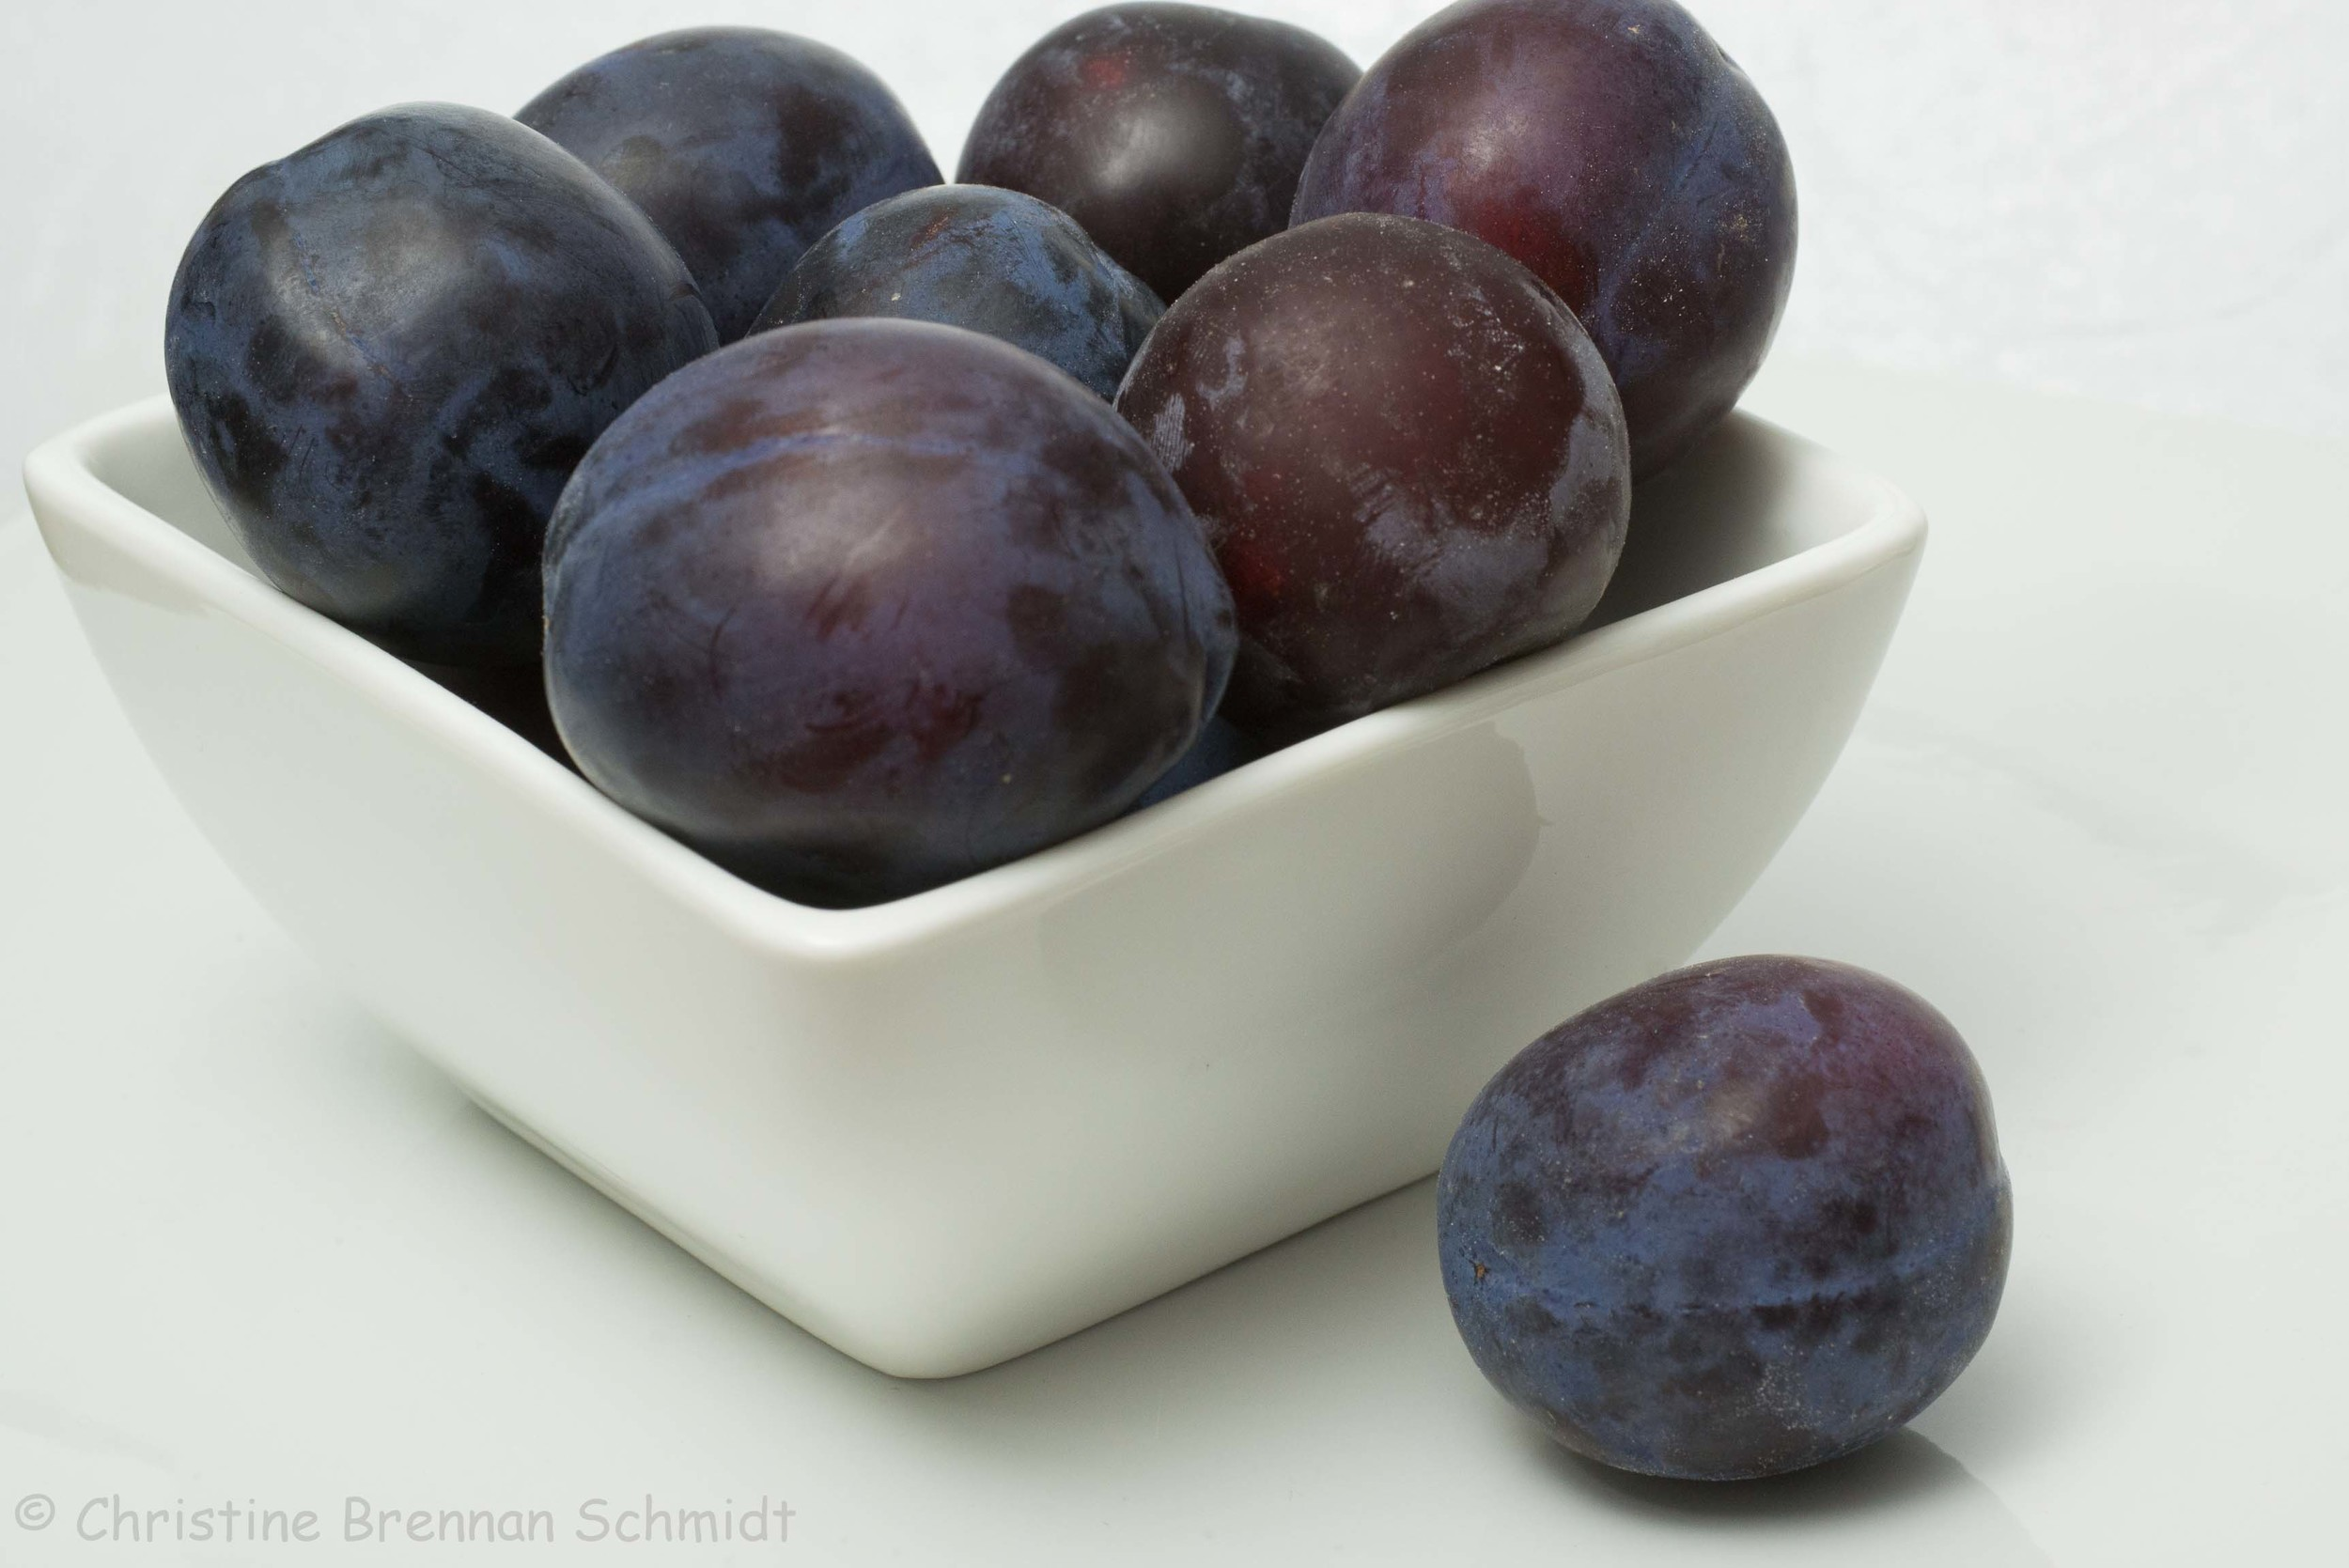 purplefruit-6011.jpg